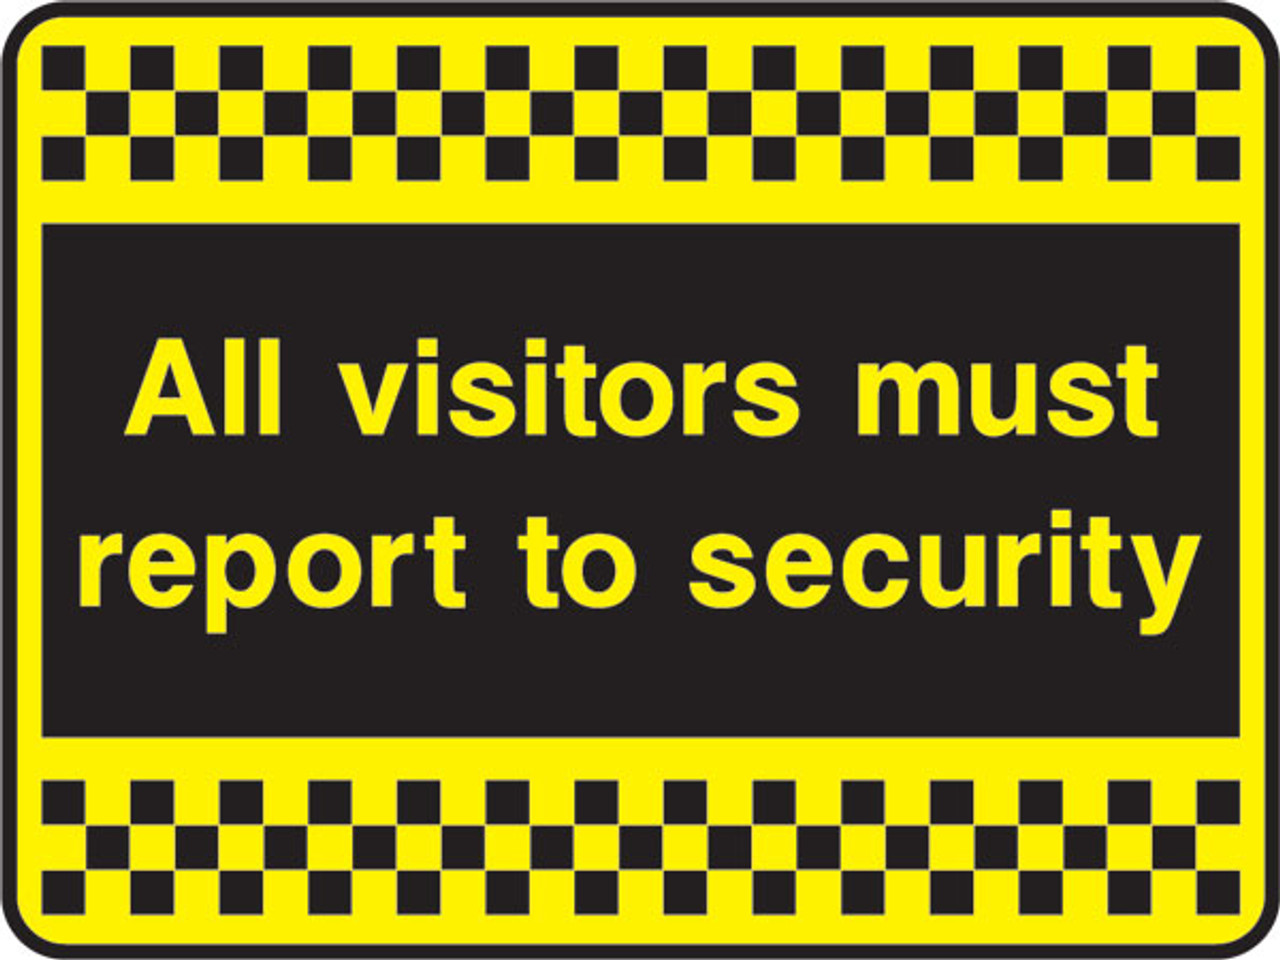 All visitors must report to security